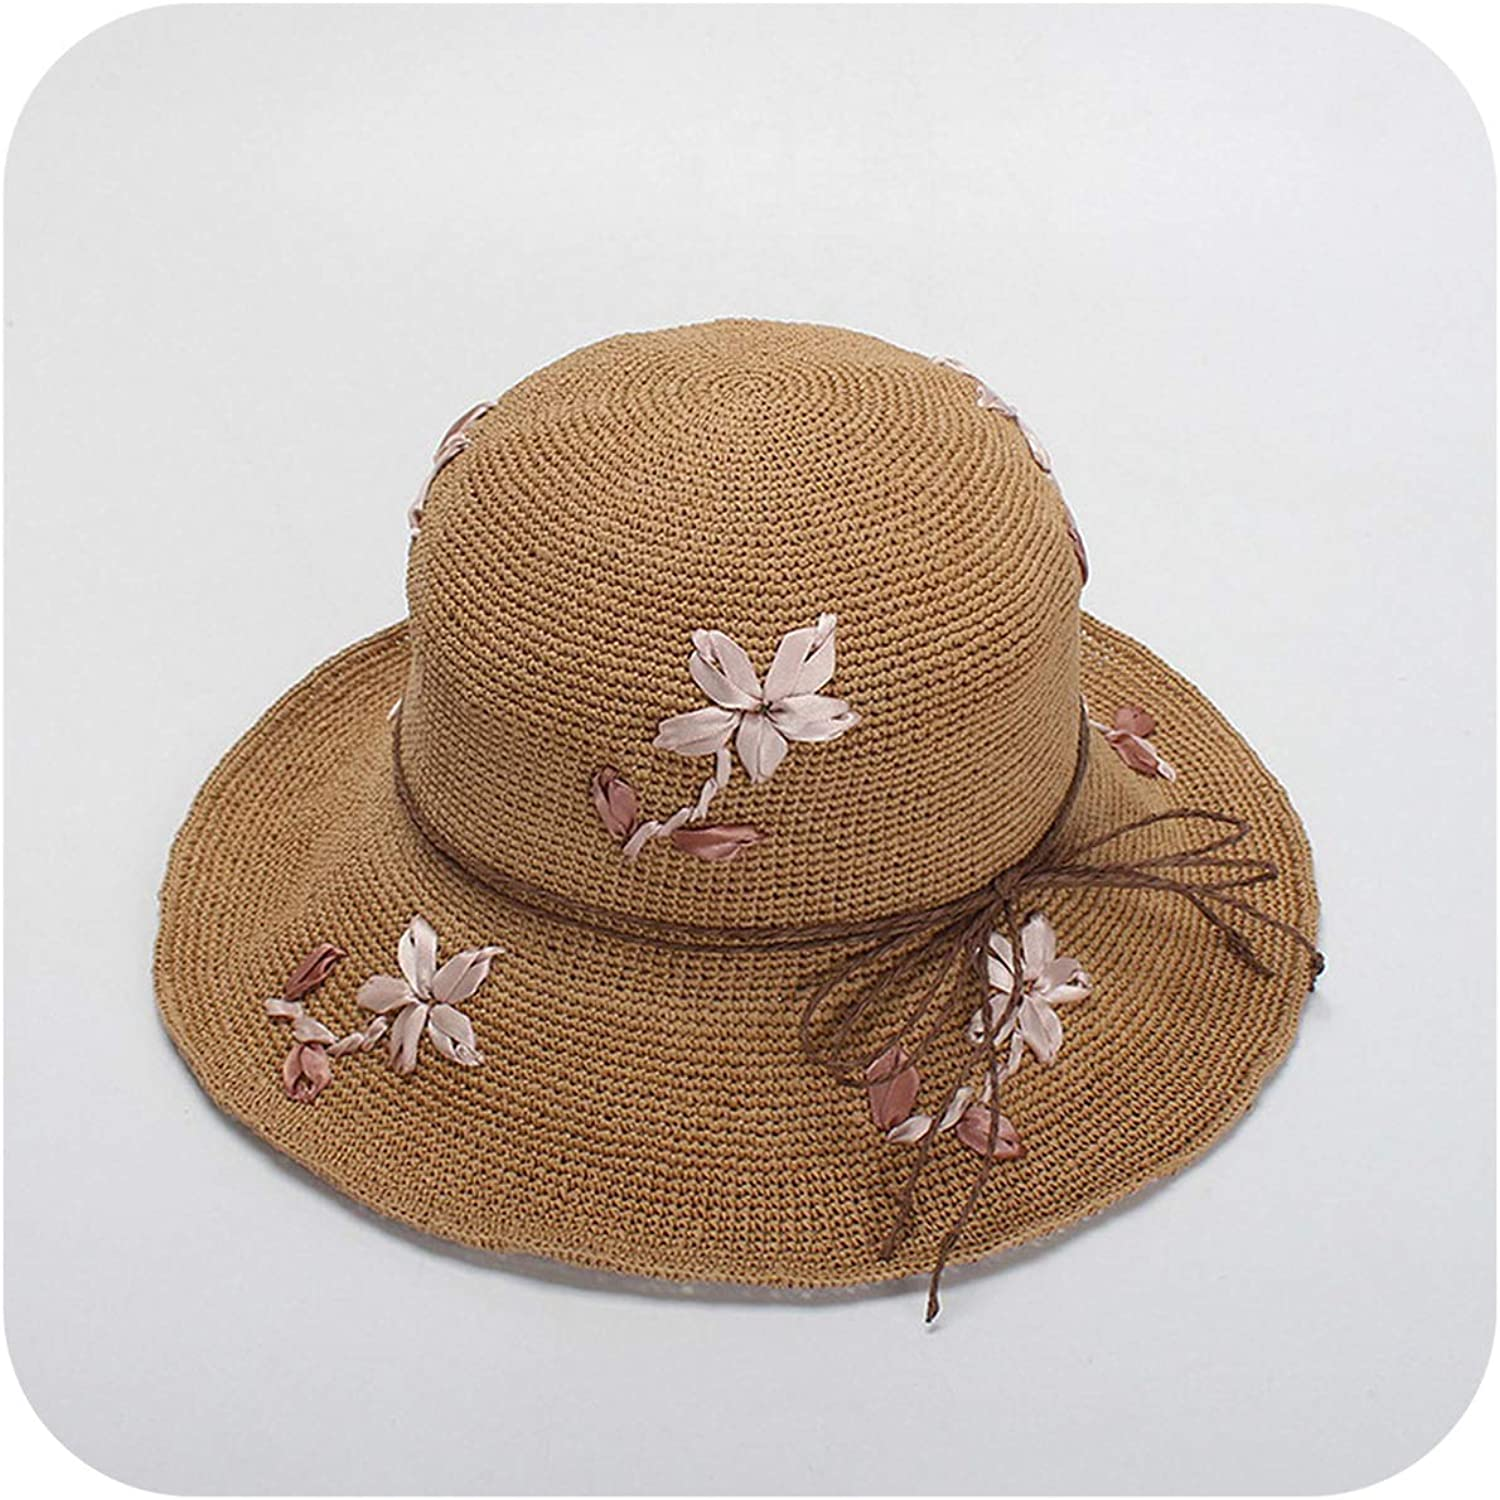 Crochet Hat for Women Packable Clochet Paper Straw Hats Summer Sun Hat,